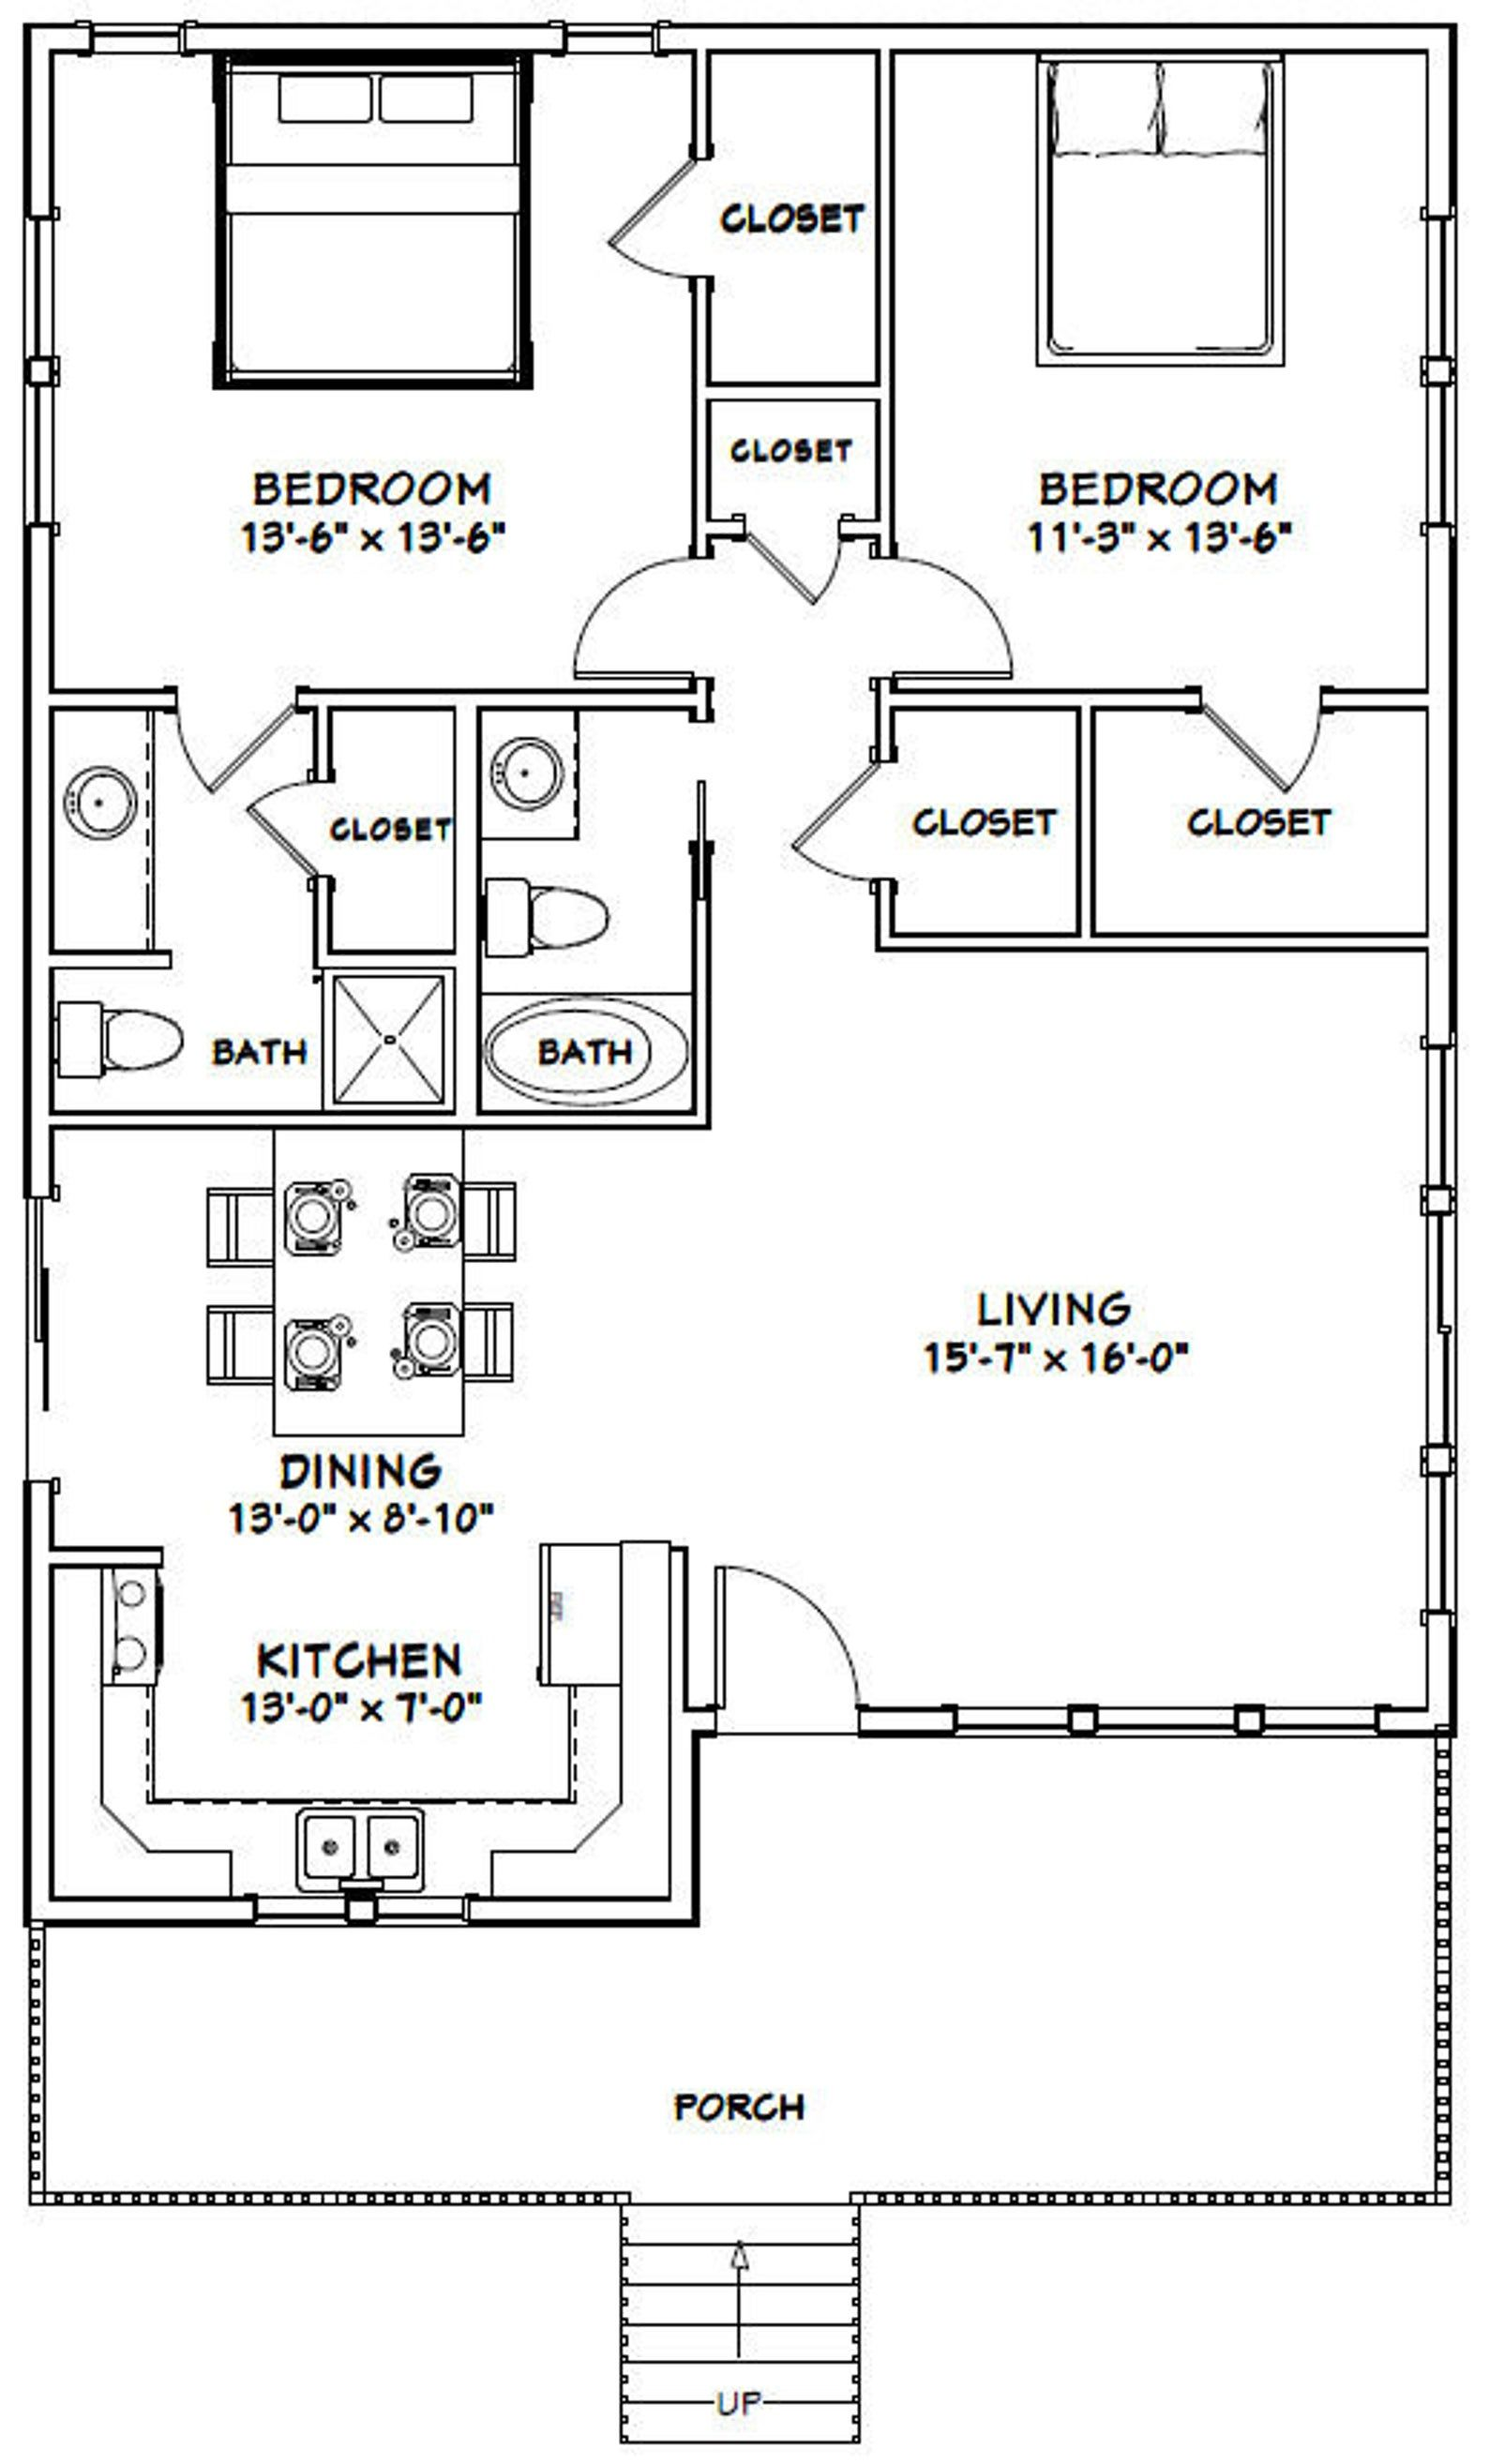 30x40 House 2 Bedroom 2 Bath 1 136 sq ft PDF Floor Plan Instant Download Model 1